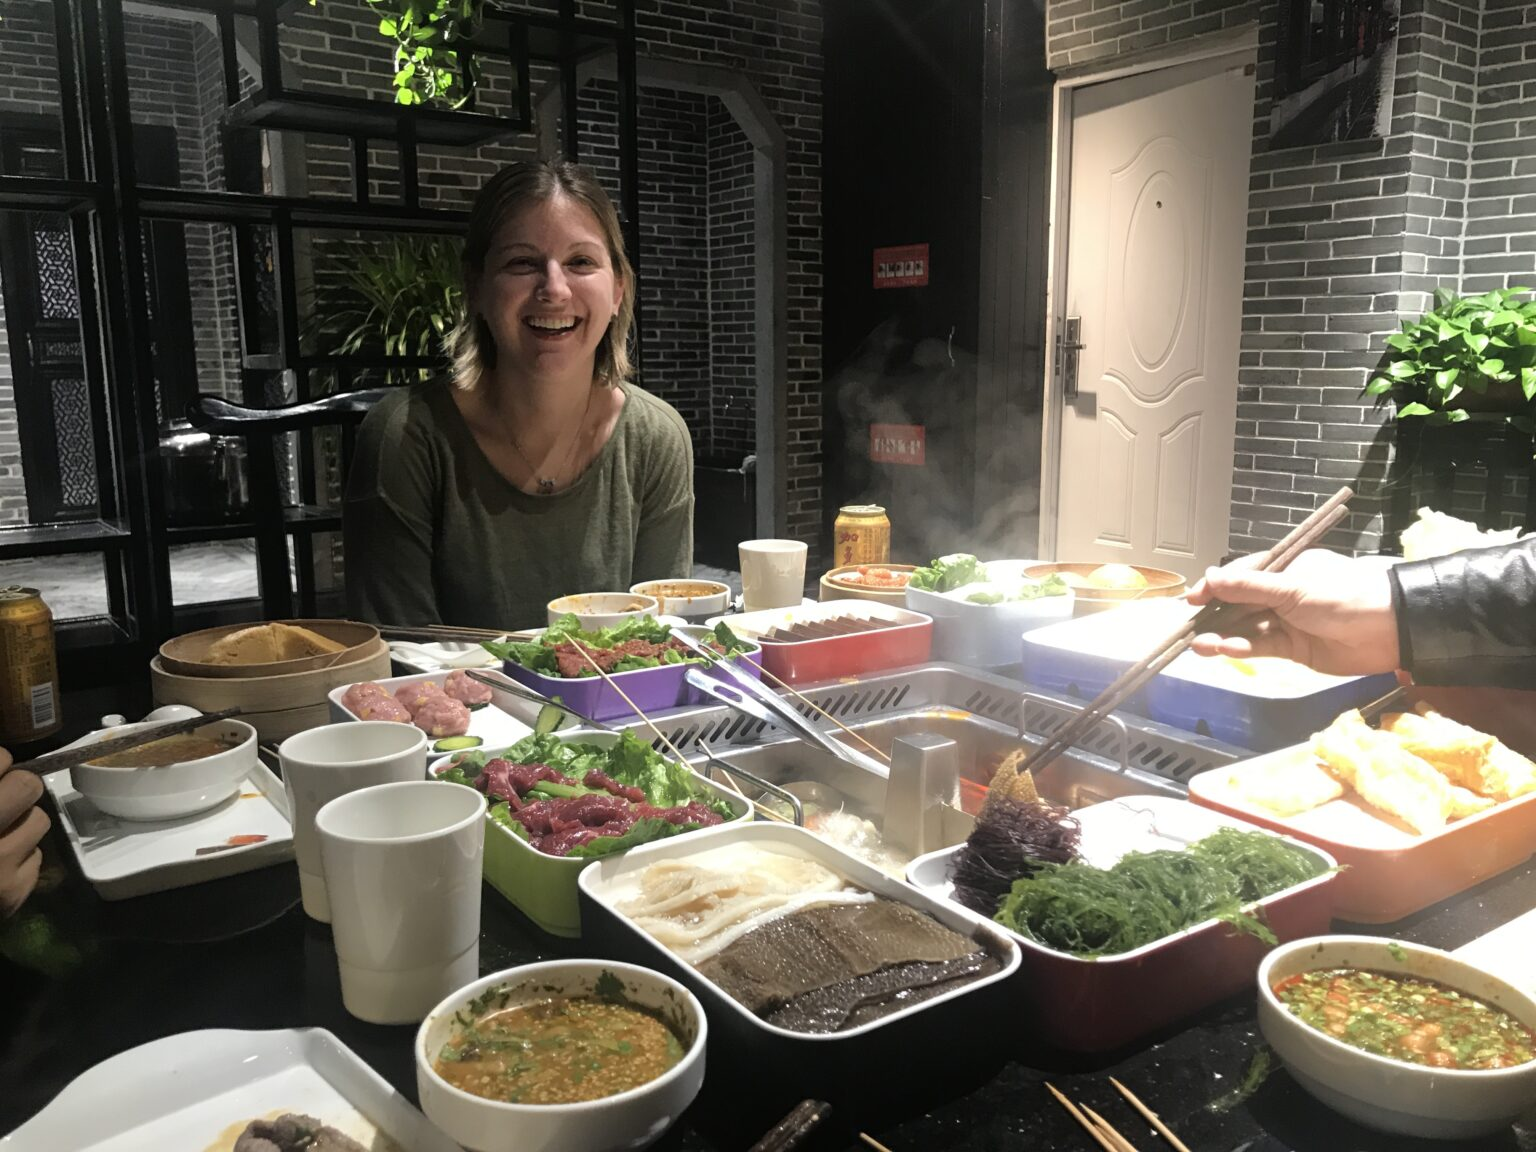 Woman sitting at crowded table with food Shanghai